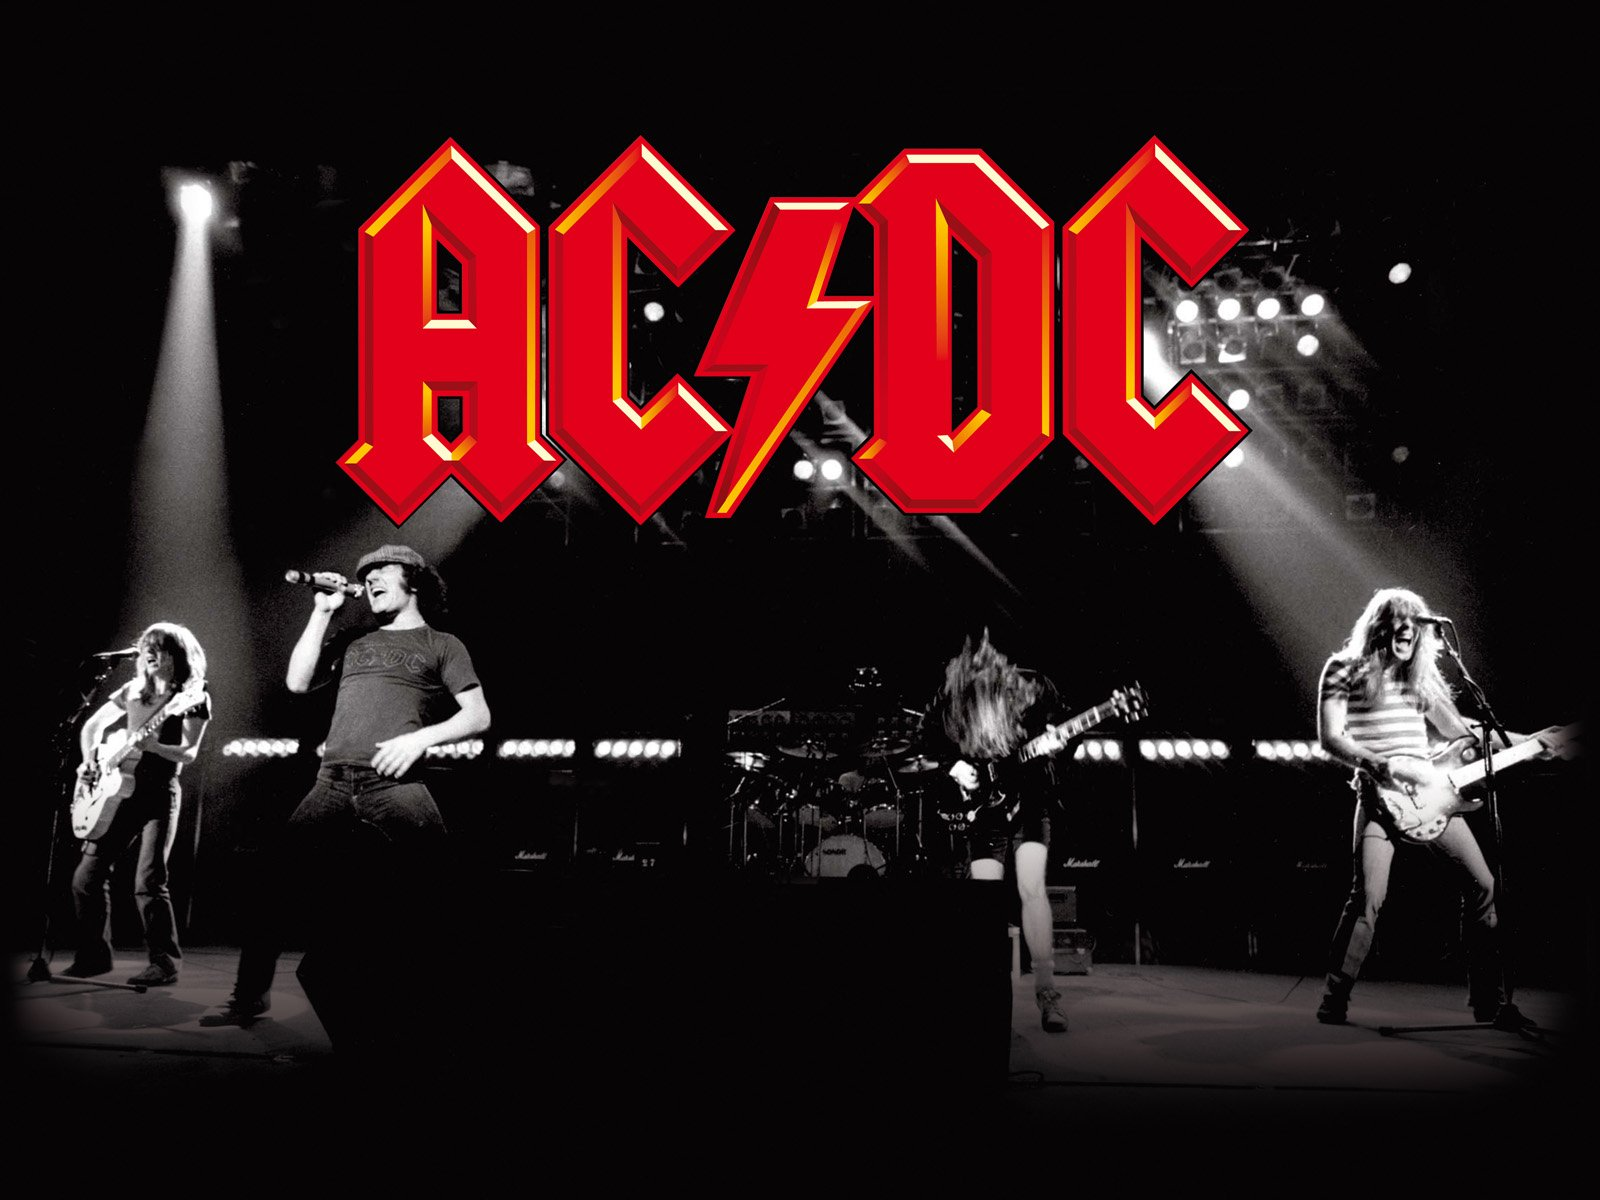 121 Acdc Hd Wallpapers Background Images Wallpaper Abyss